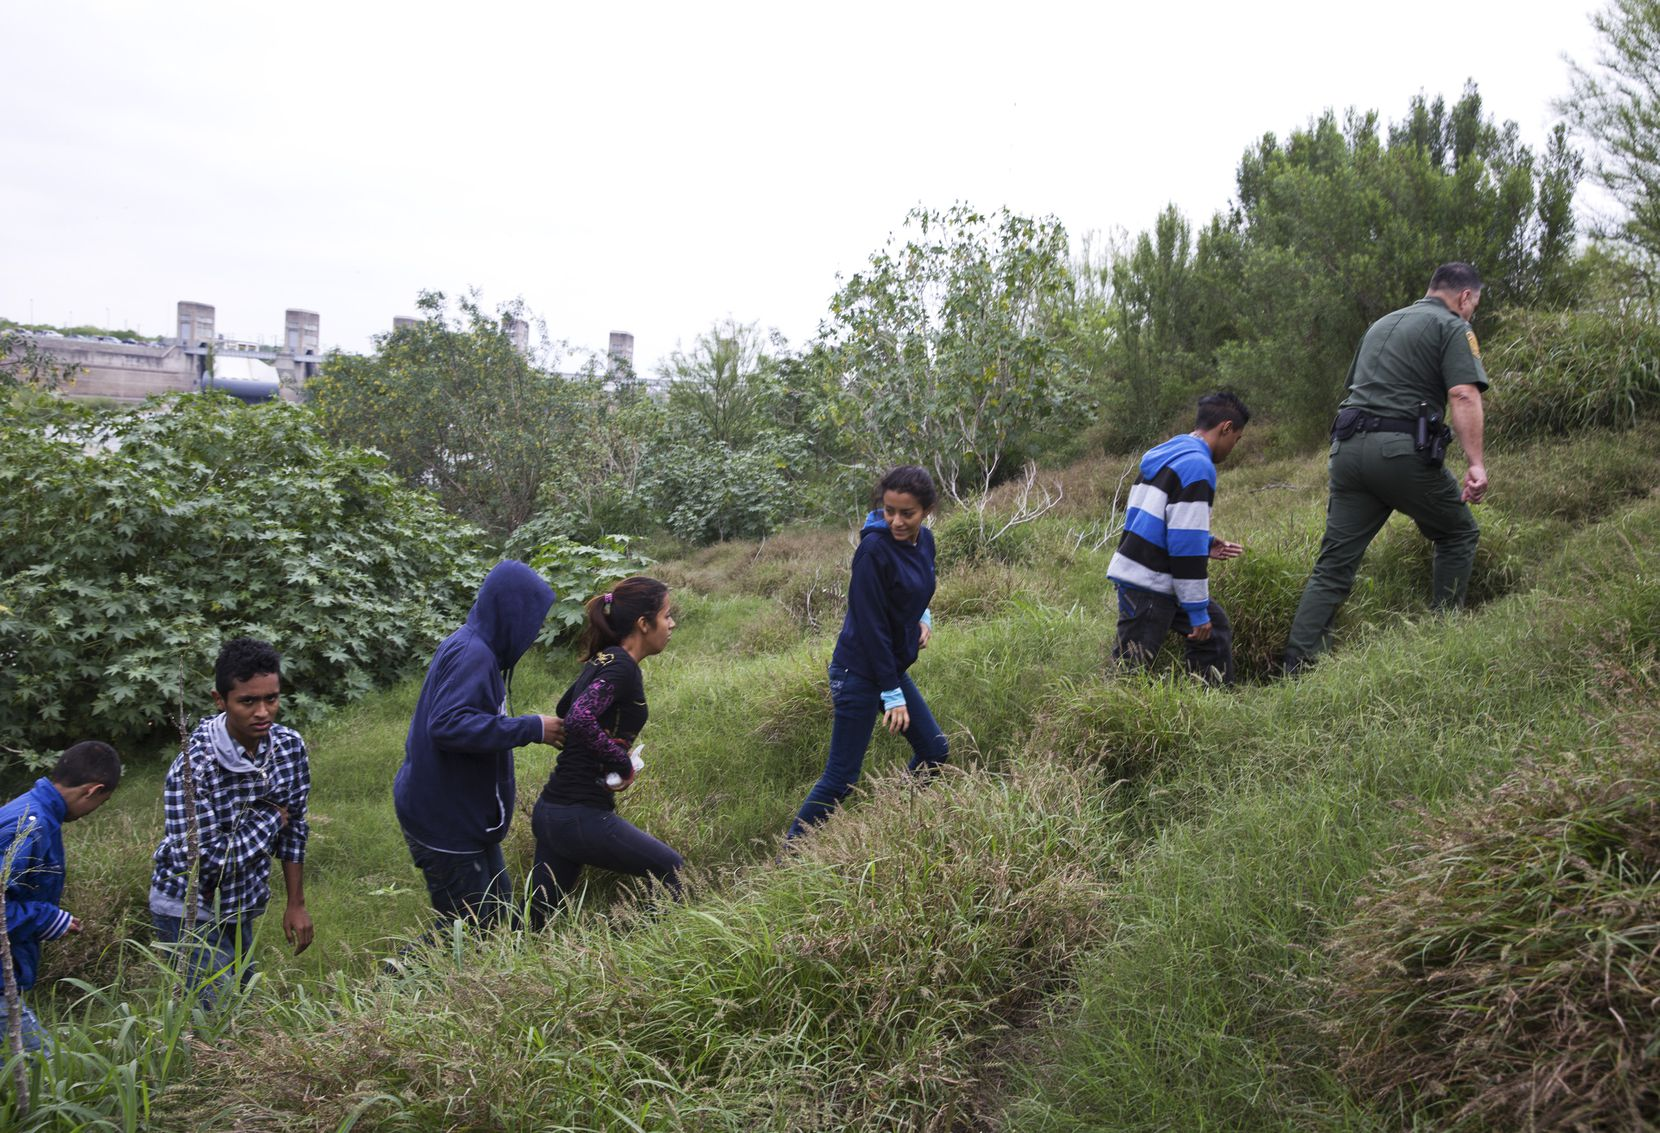 Migrants from Honduras and Guatemala are detained by the U.S. Border Patrol after crossing the Rio Grande at the border in south Texas.